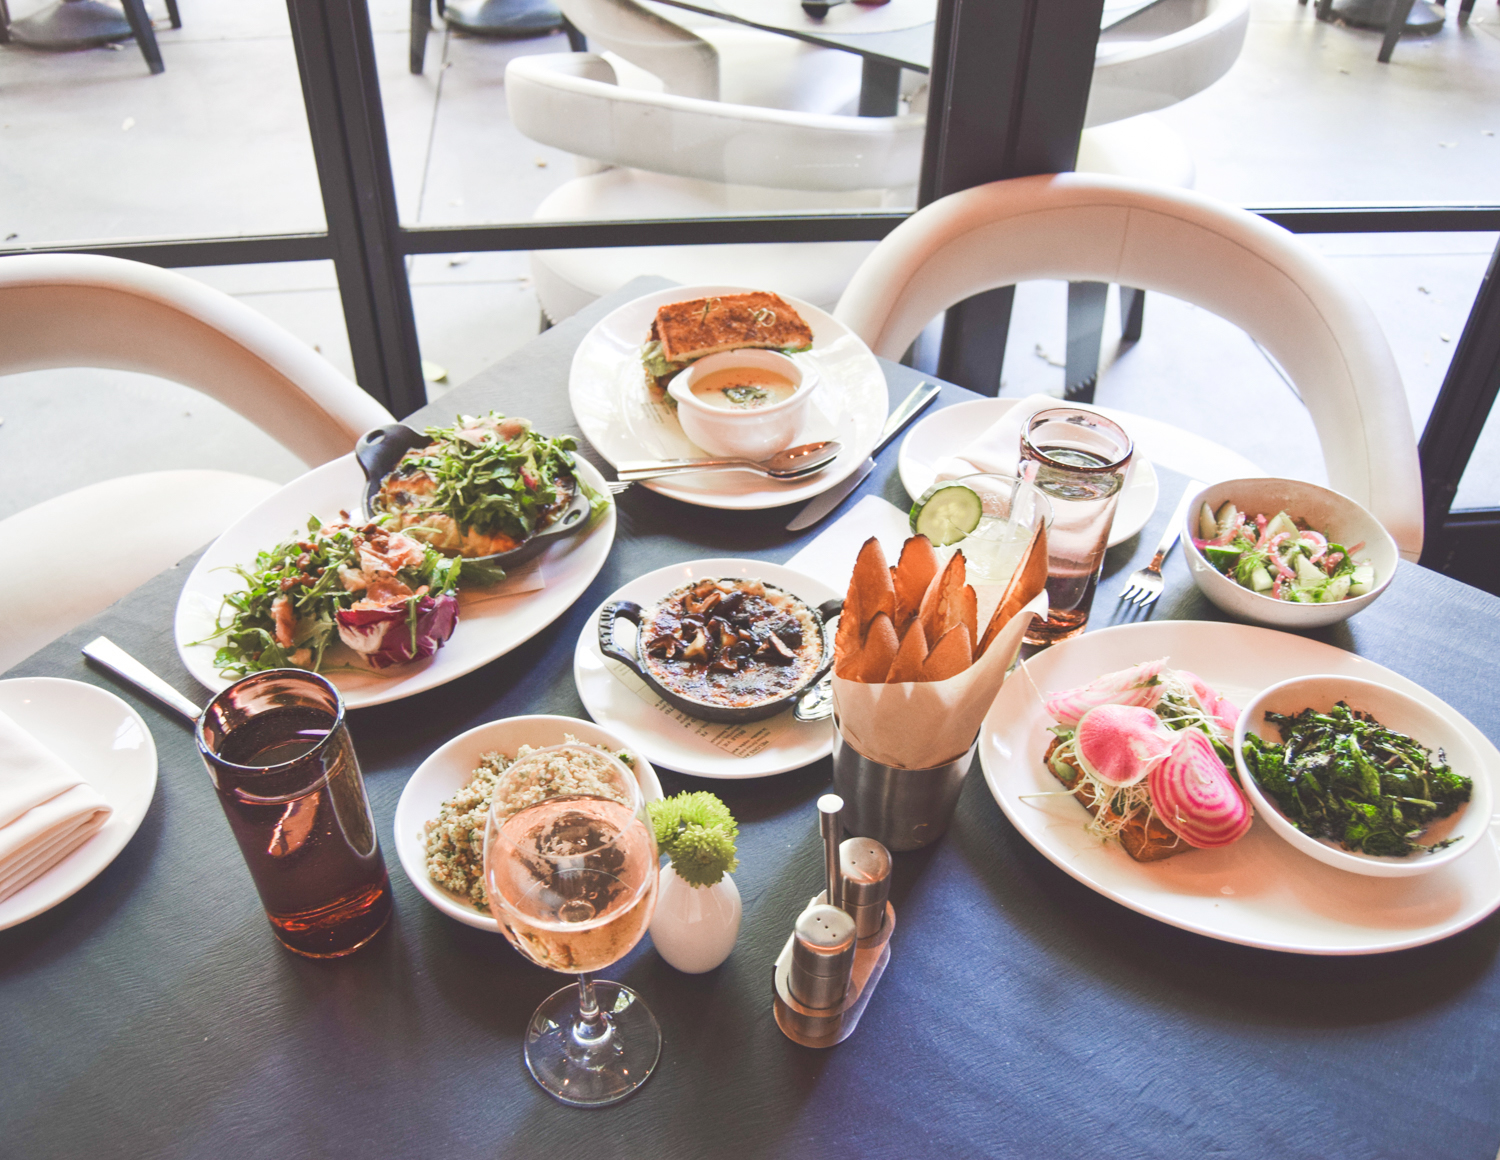 livvyland-blog-olivia-watson-vandi-fair-w-hotel-atx-staycation-stay-cation-austin-texas-fashion-travel-blogger-hotel-review-trace-restaurant-bar-lunch-1